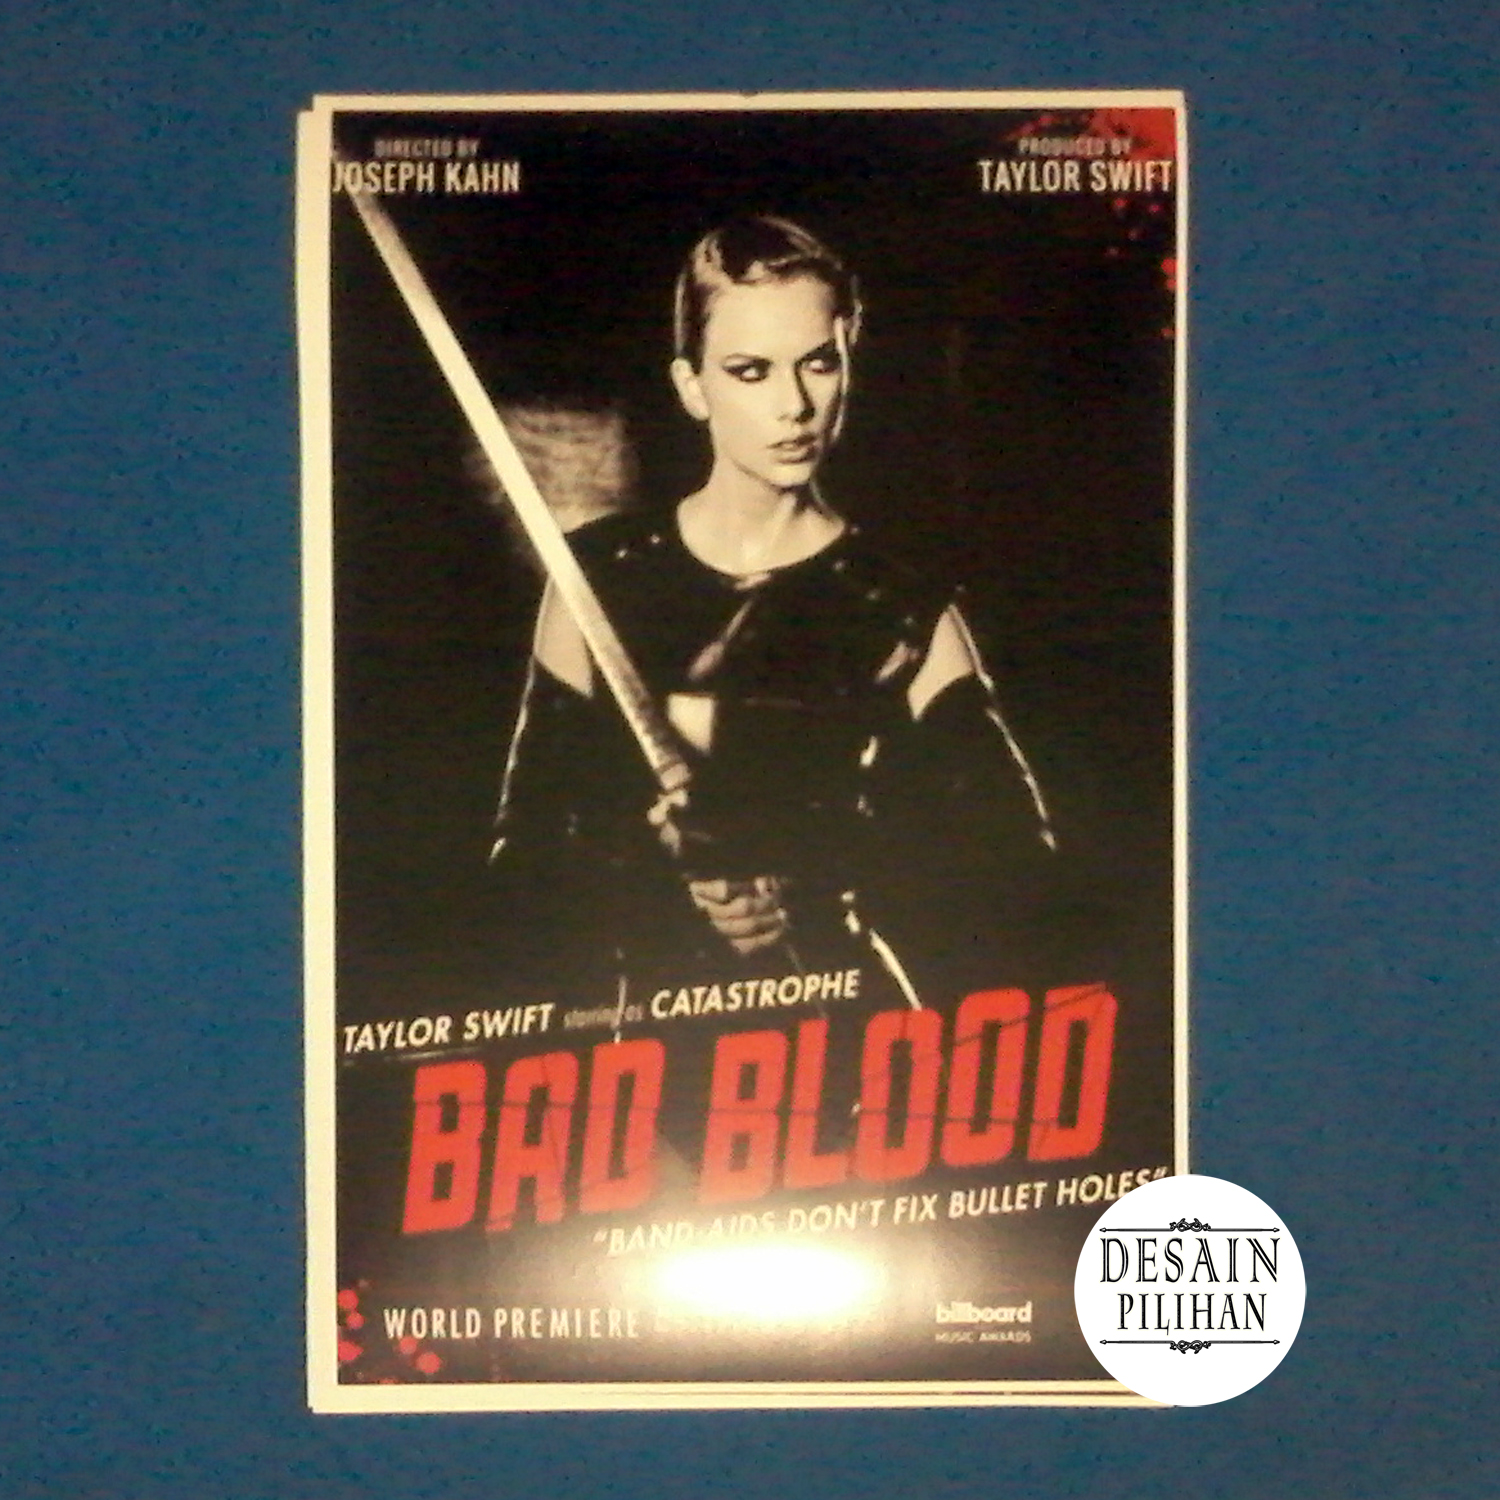 POSTER TAILOR SWIFT BAD BLOOD